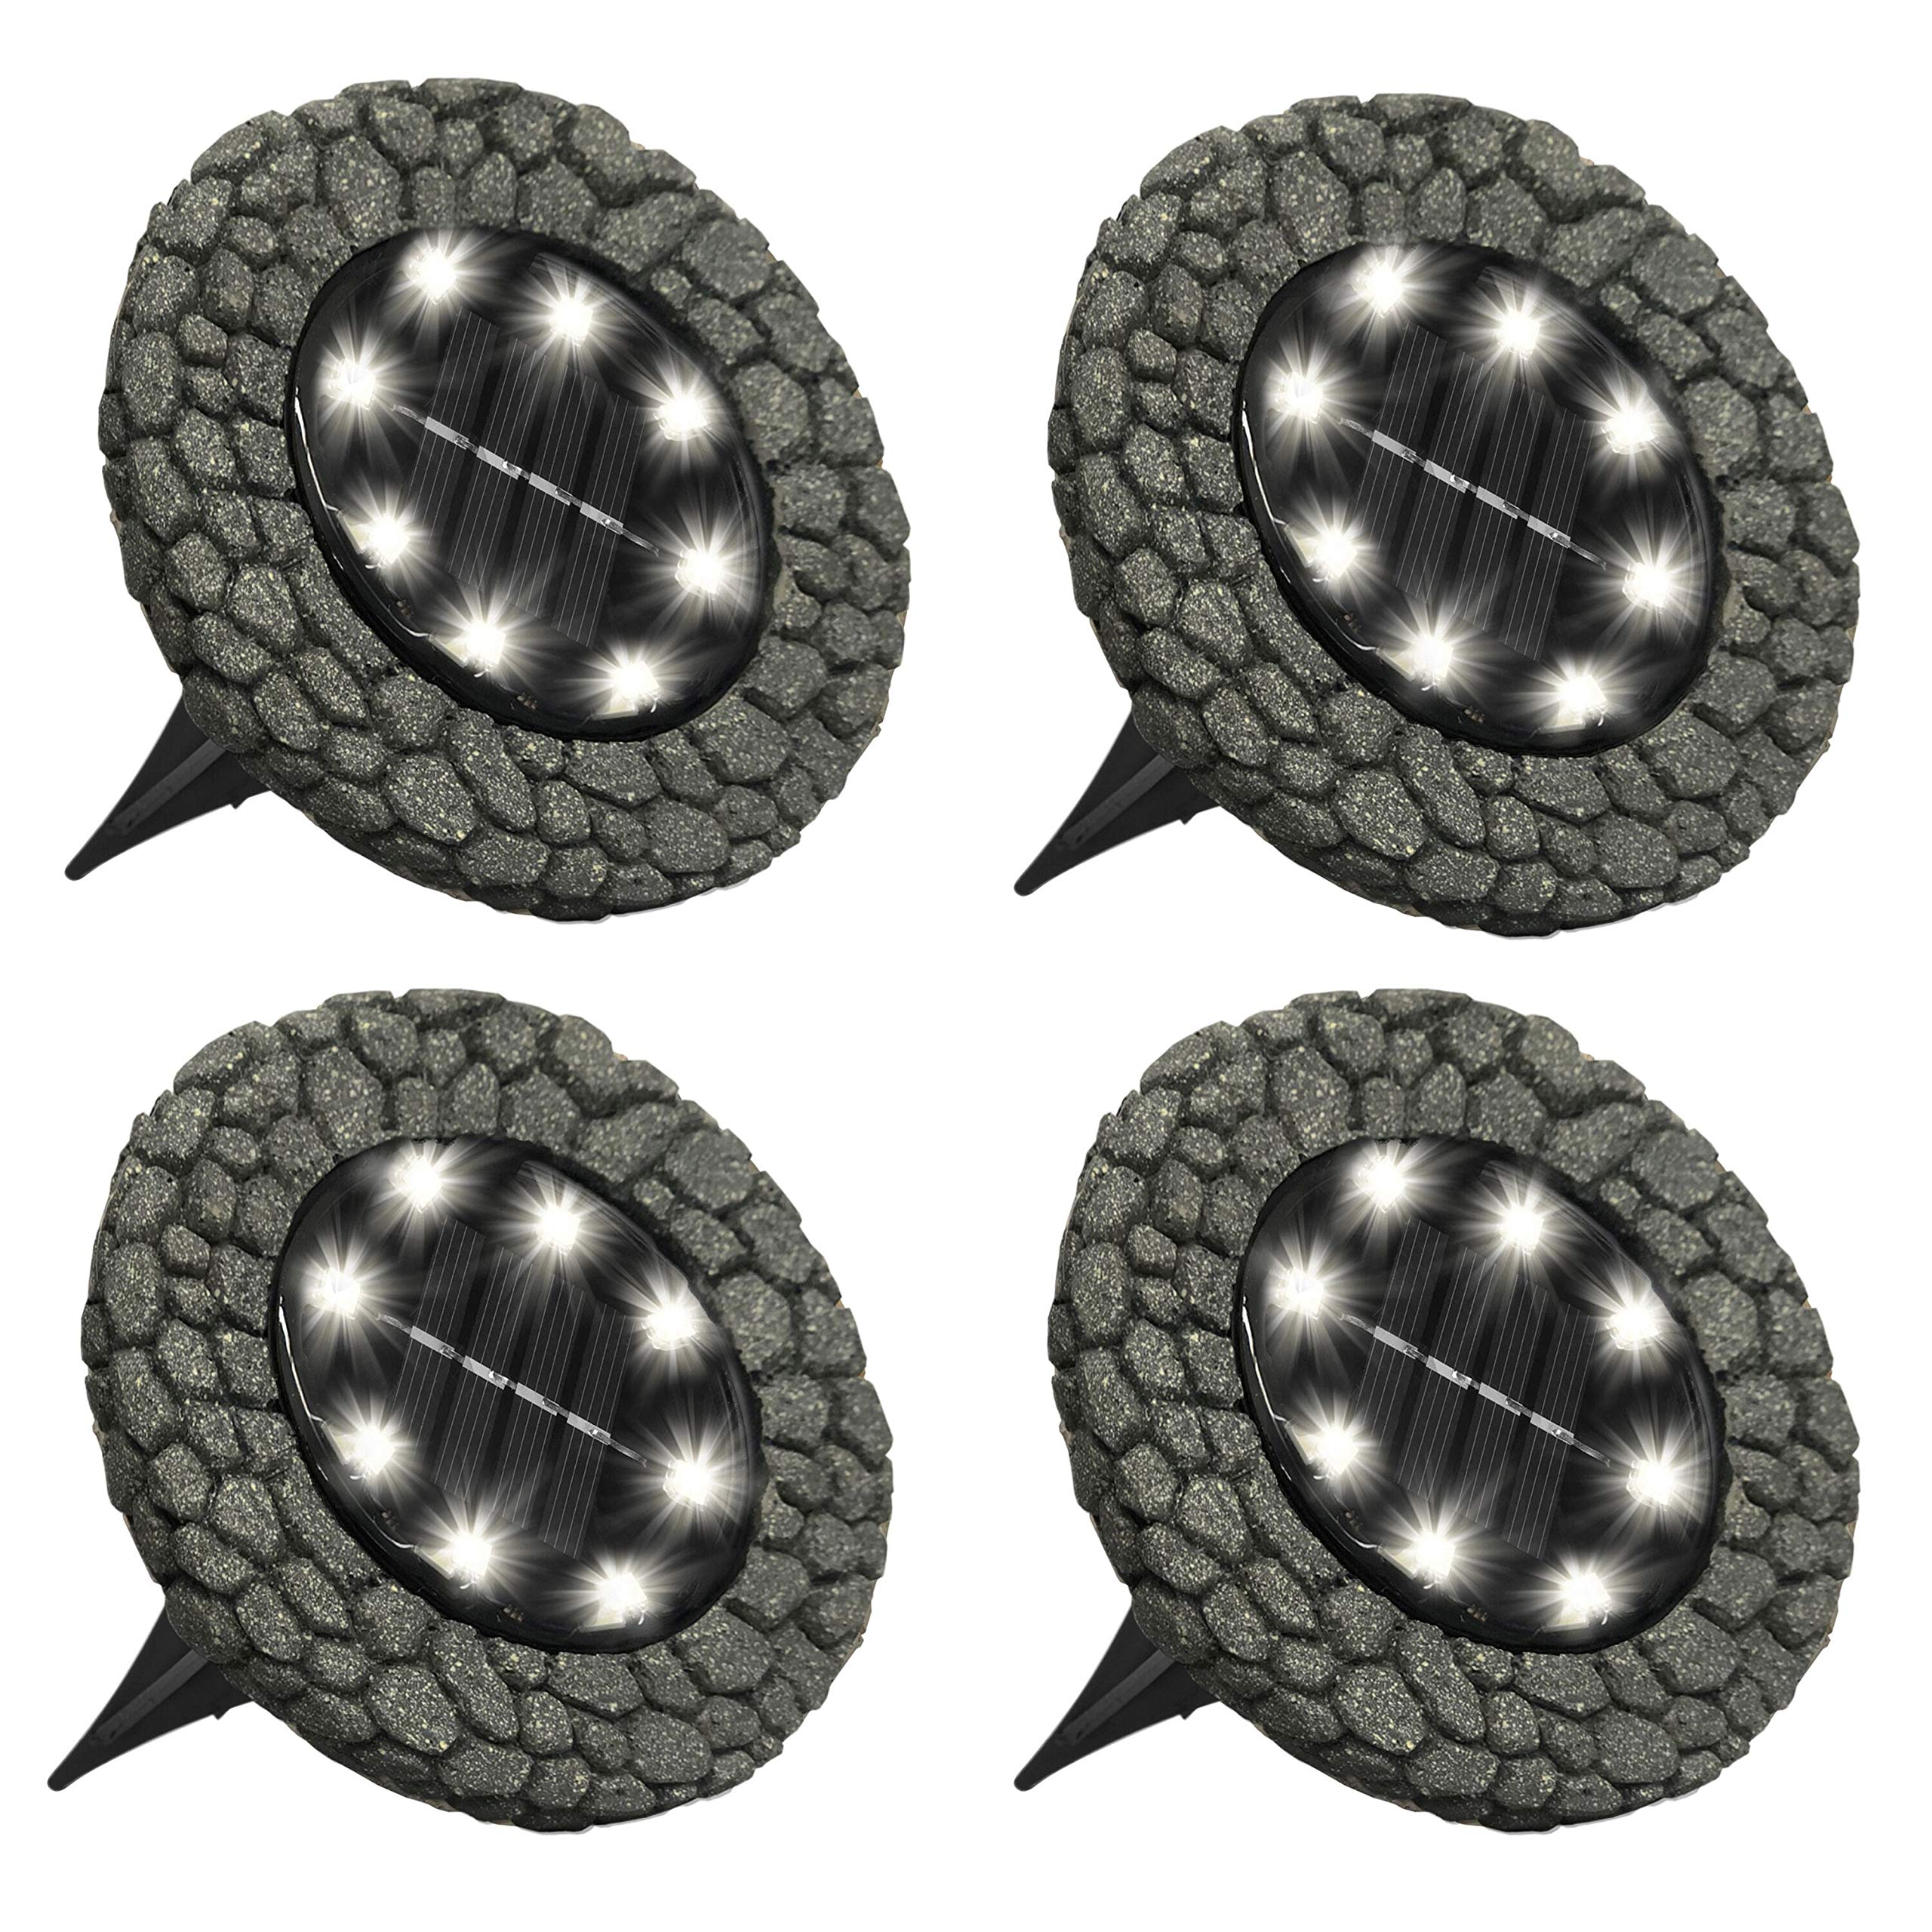 Bell+Howell Disk Lights Stone - Heavy Duty Outdoor Solar Pathway Lights - 8 LED, Auto On/Off, Water Resistant, with Included Stakes, for Garden, Yard, Patio and Lawn -As Seen on TV by Bell+Howell